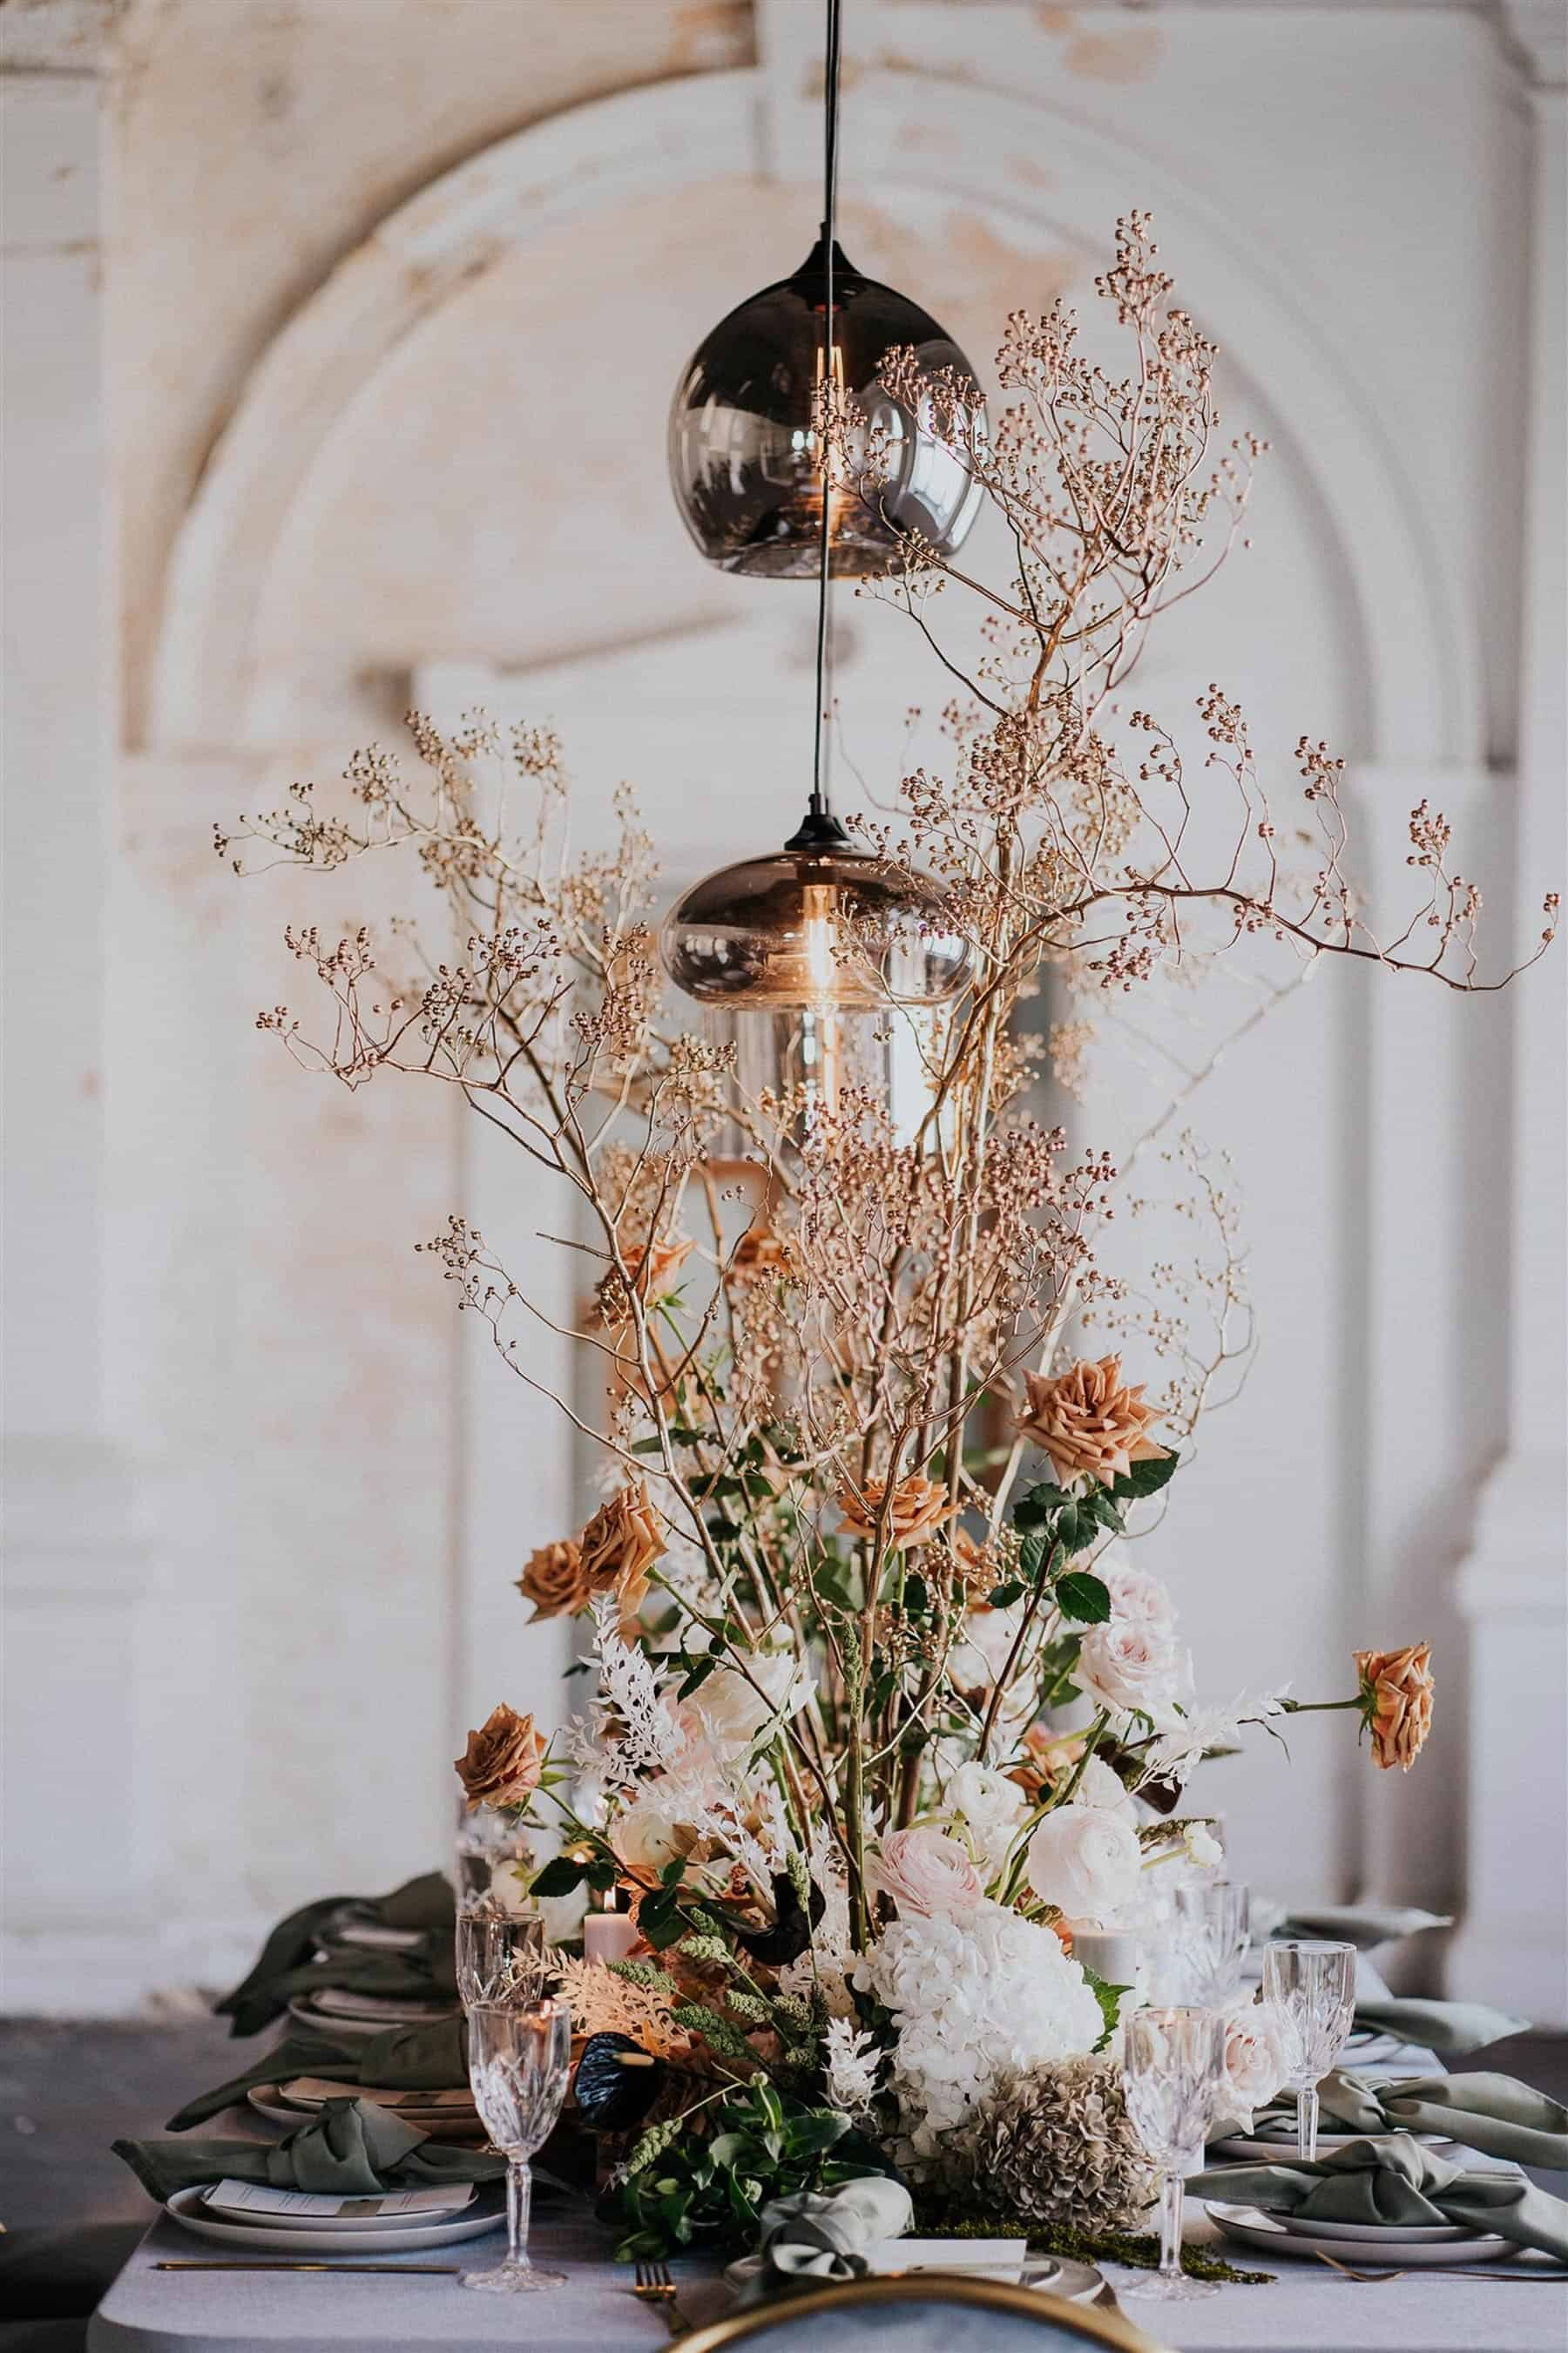 floral tablescape with hanging pendant lights